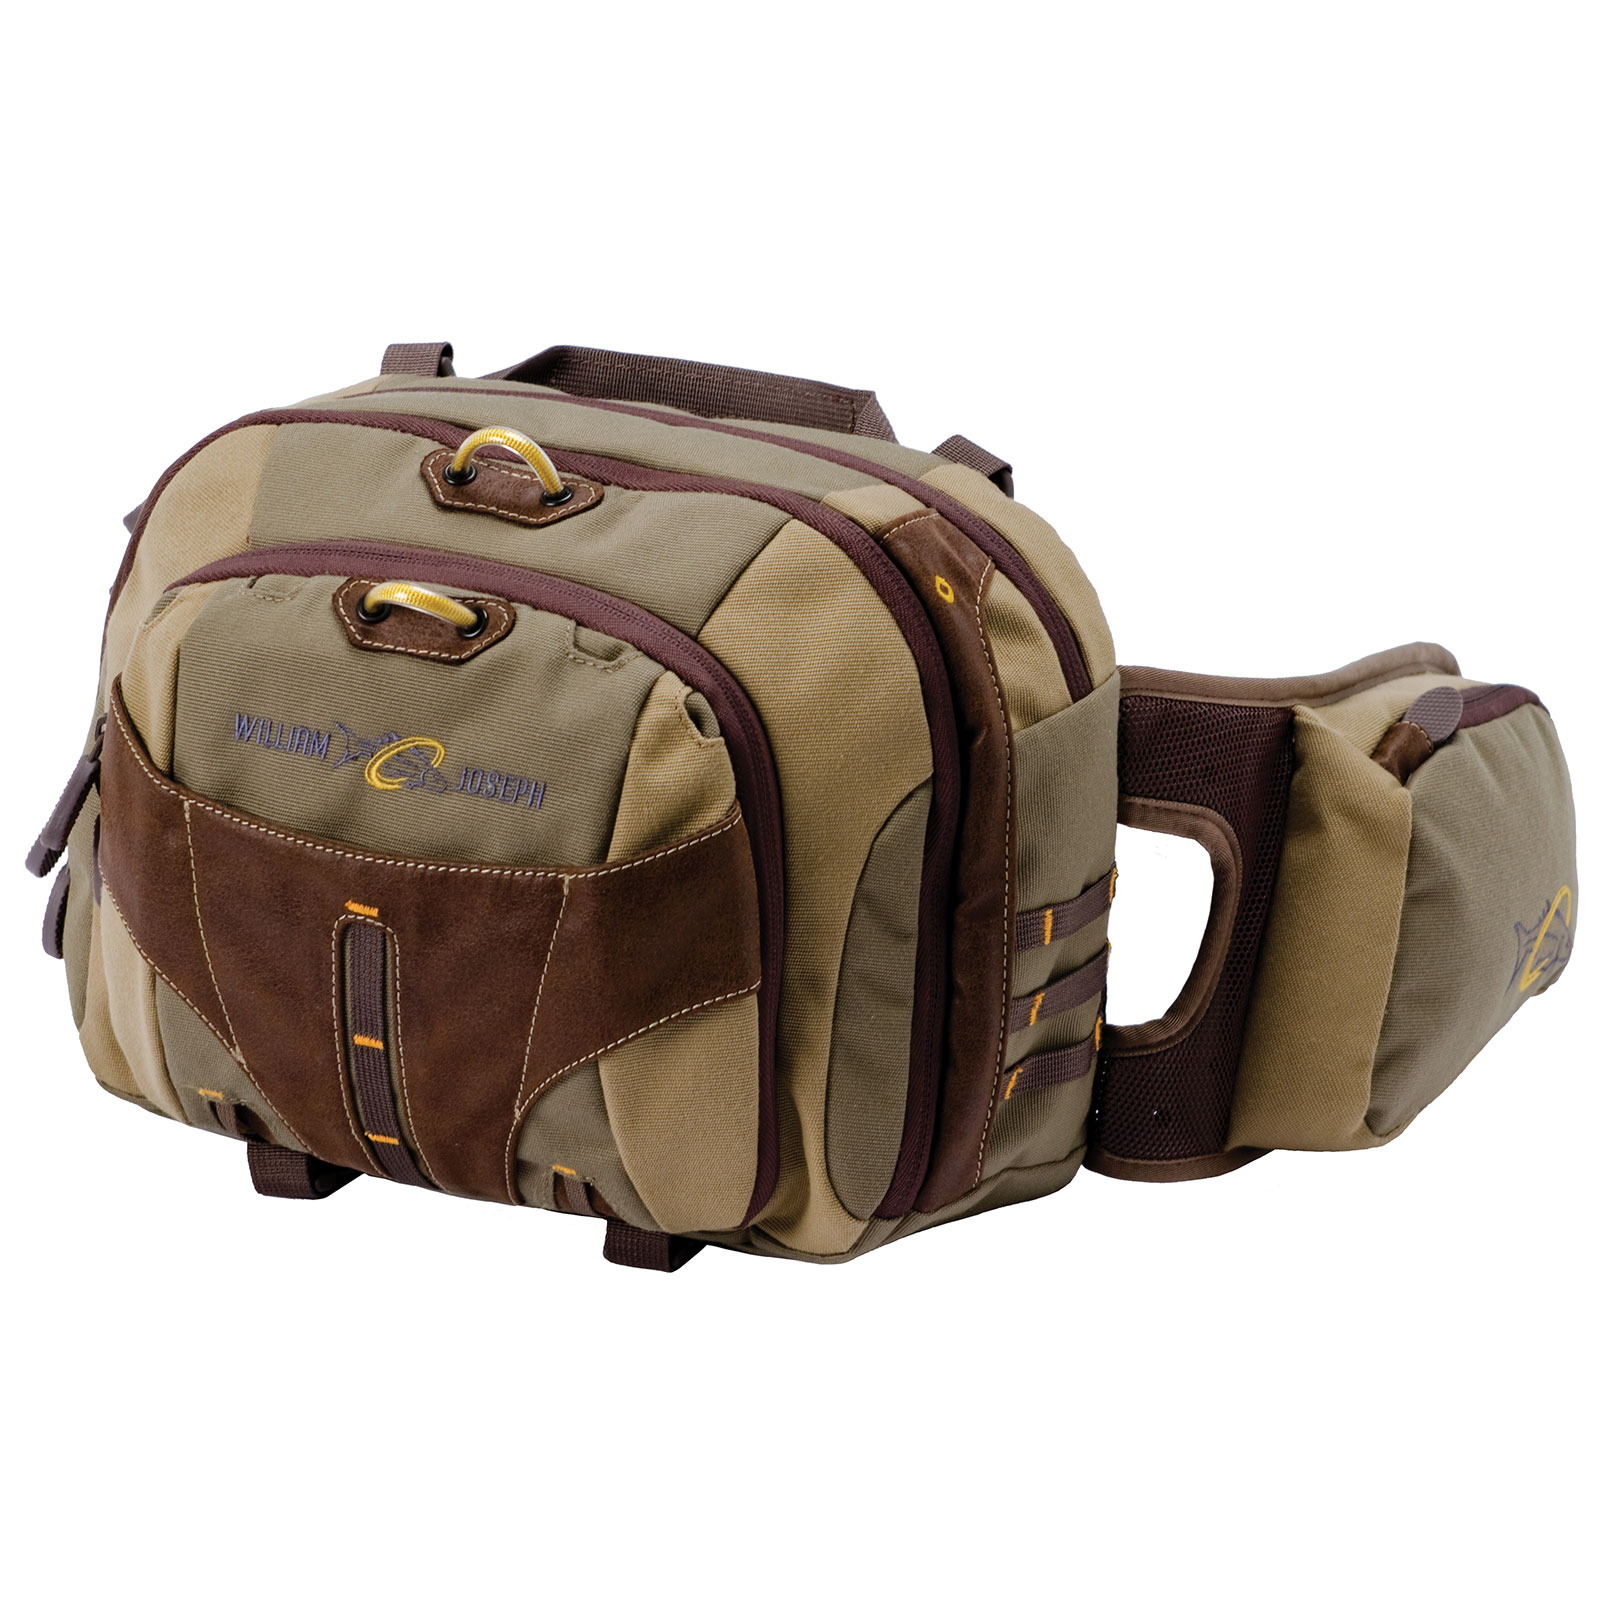 William Joseph Old School Fly Fishing Lumbar Chest or Fanny Pack Waist Bag